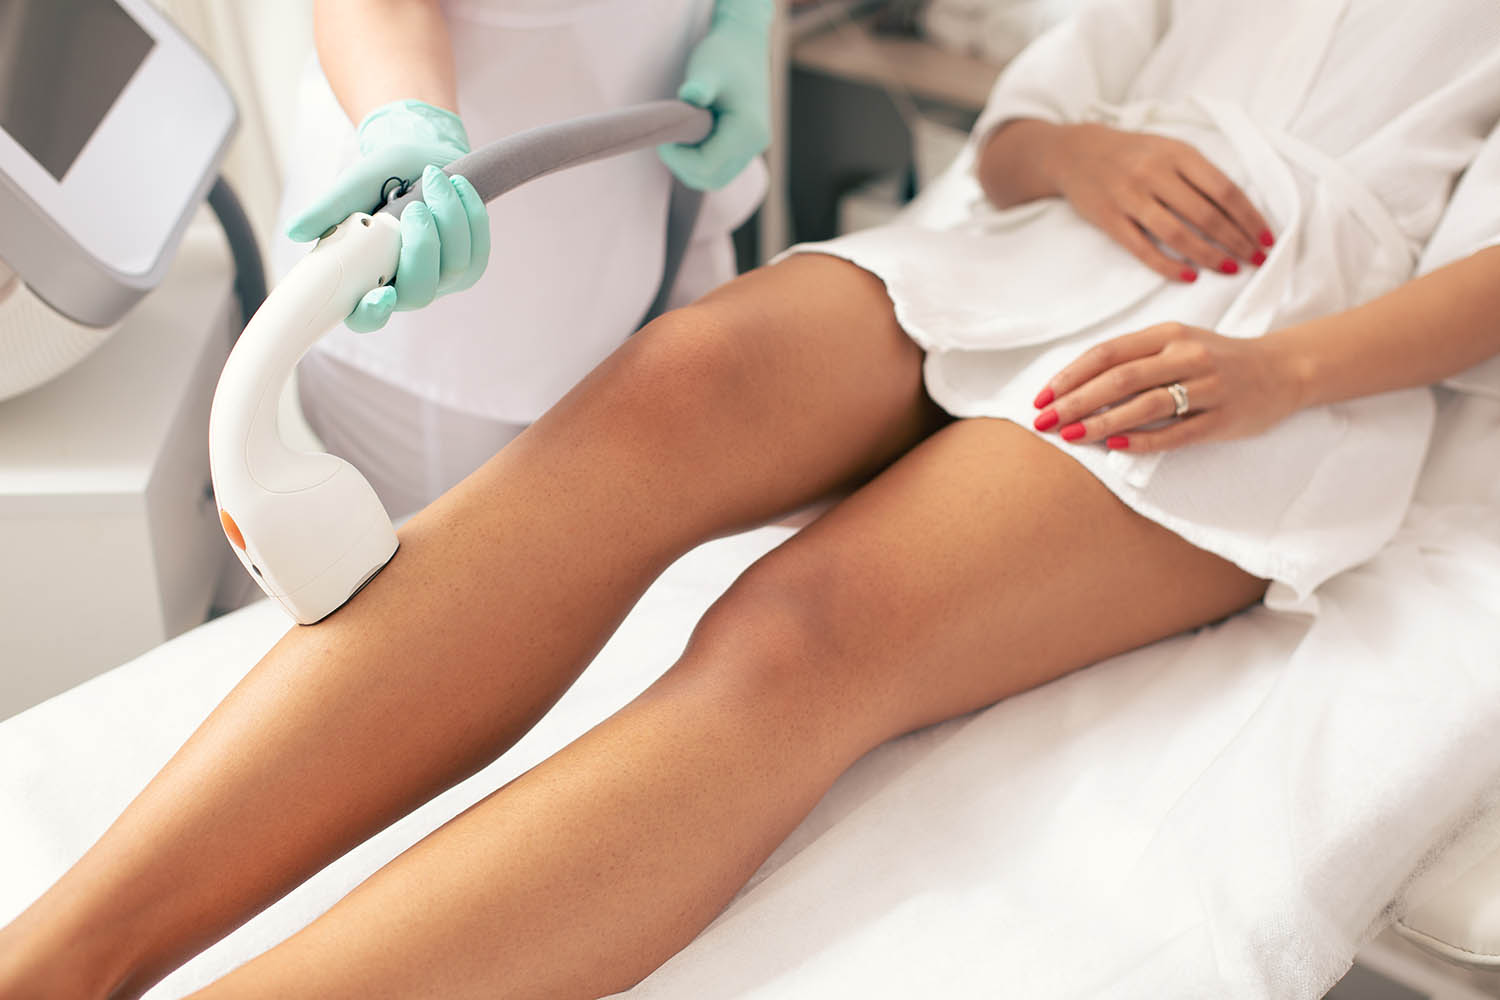 Close up of the medical worker conducting laser hair removal with a vacuum suction